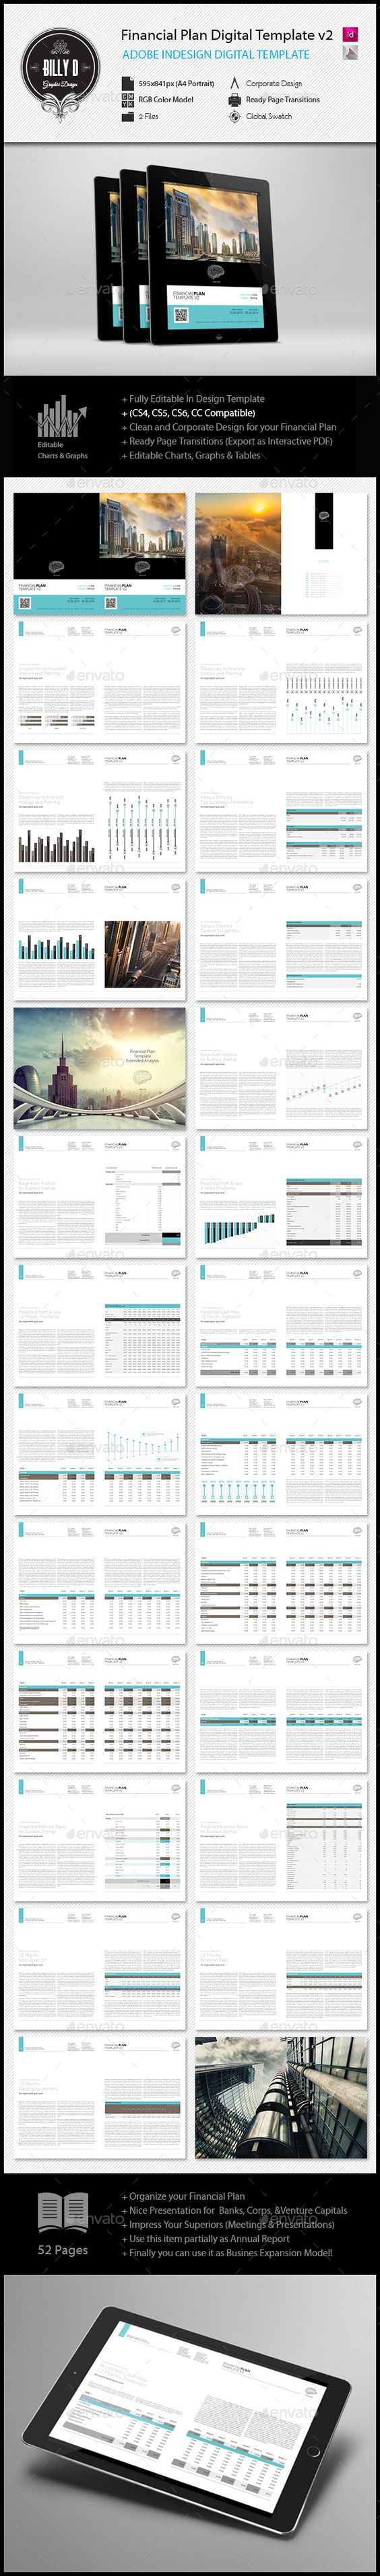 Pages rgb color - Preview This Item Here Financial Plan Digital Template Rgb Color Model Clean And Contemporary Design